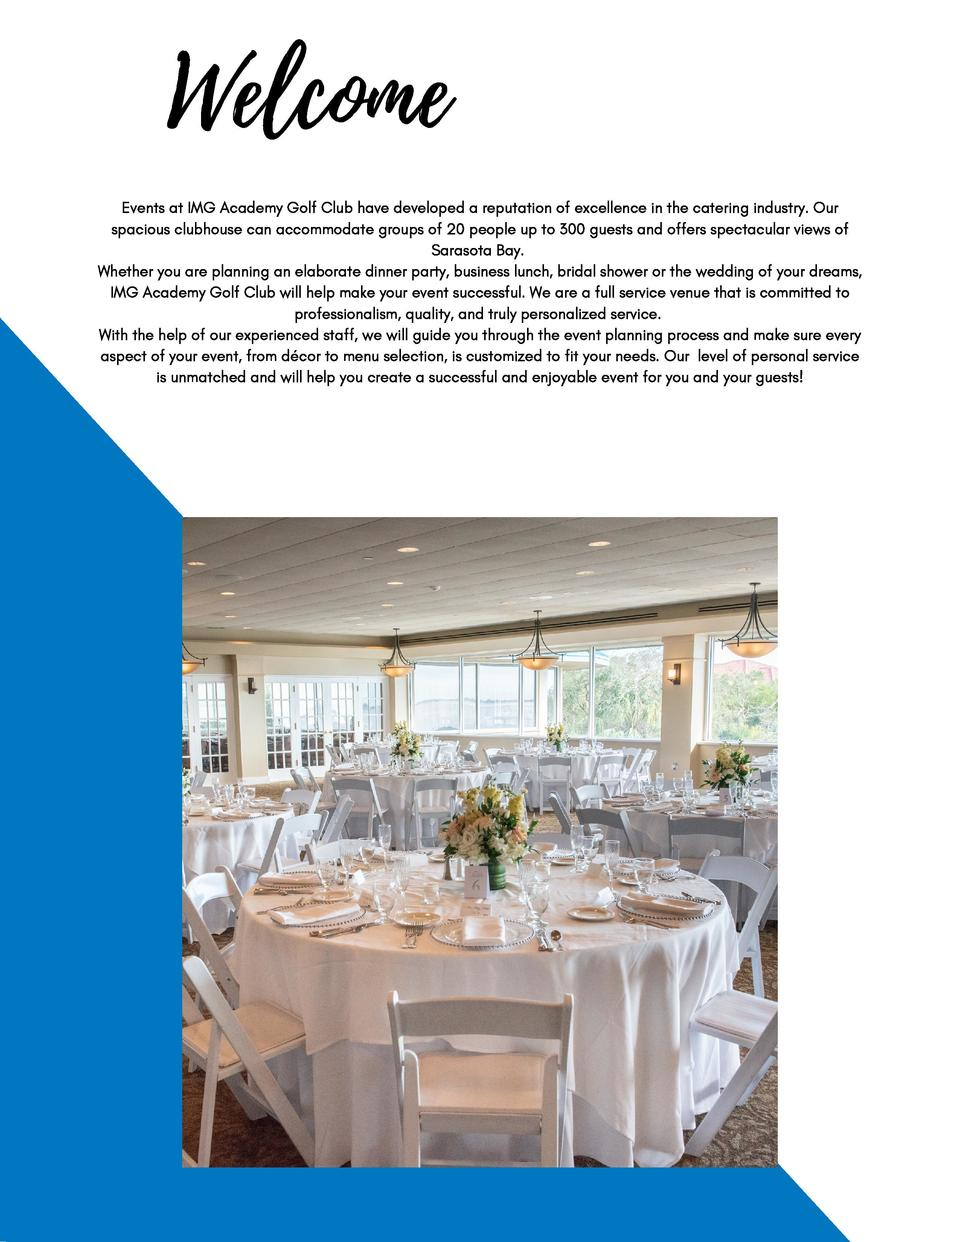 Welcome Events at IMG Academy Golf Club have developed a reputation of excellence in the catering industry. Our spacious c...